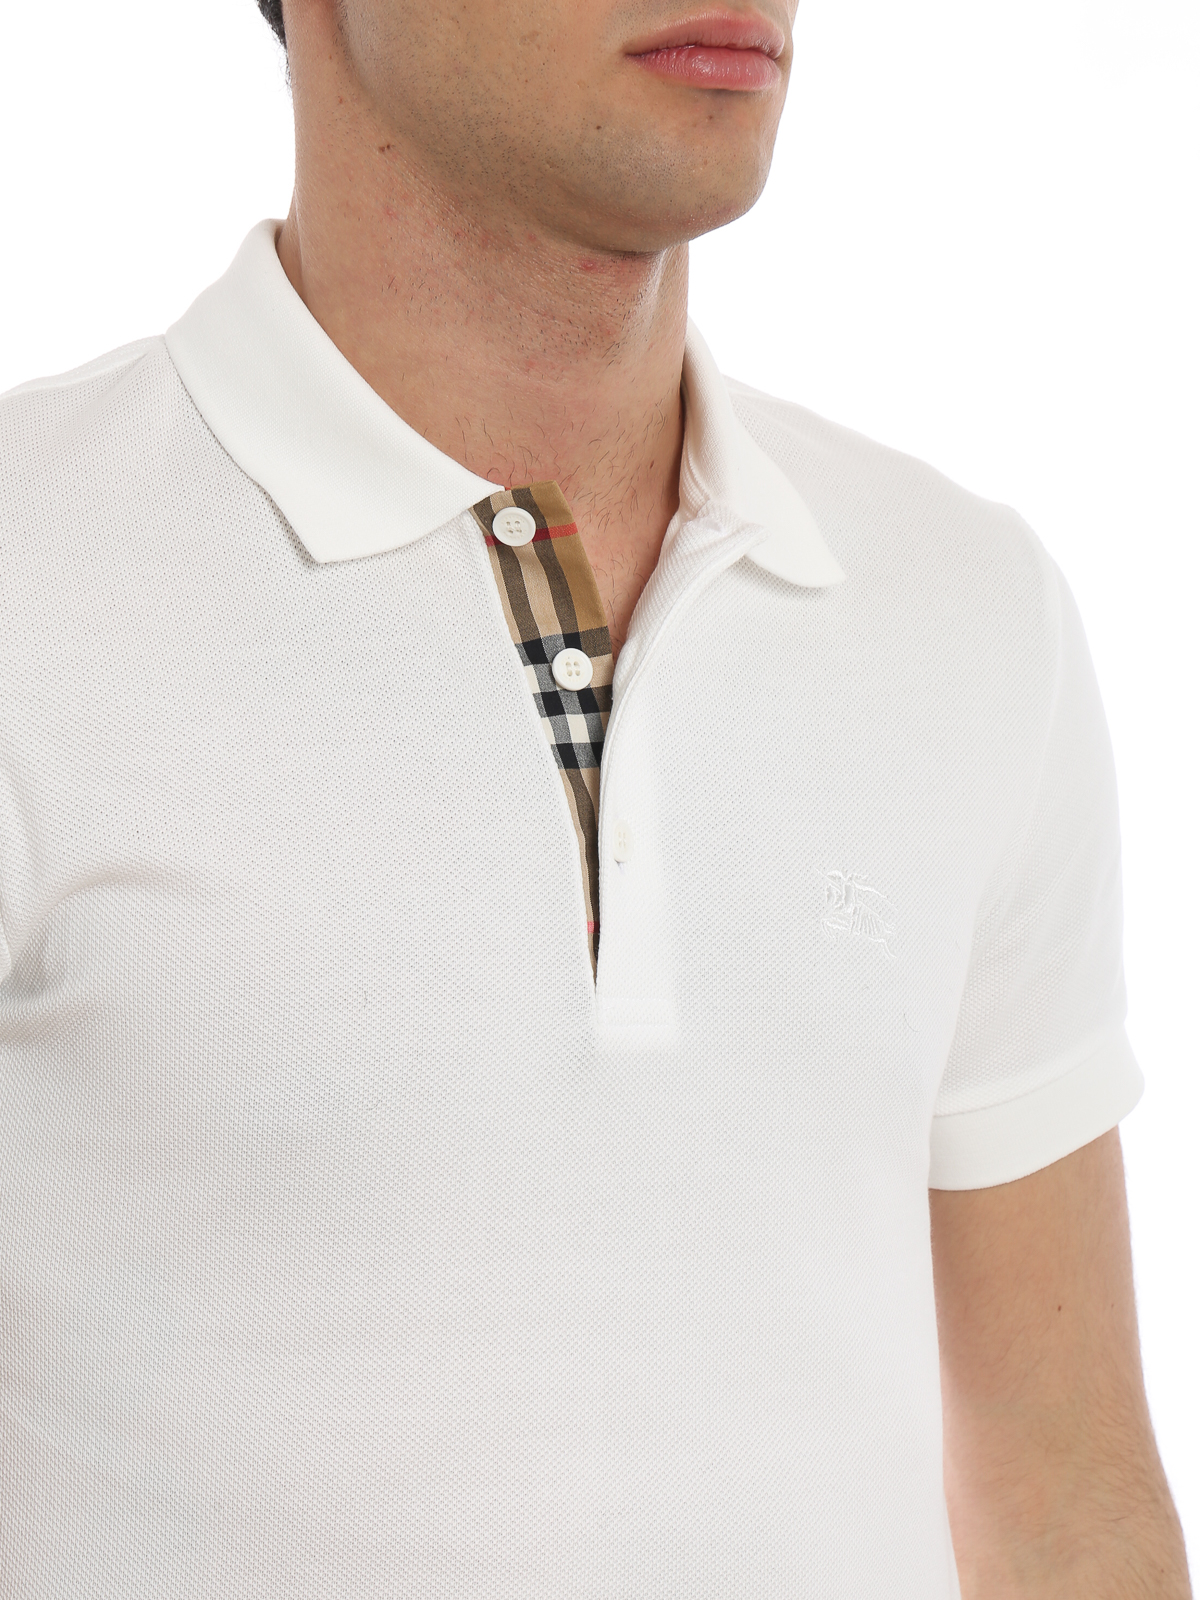 3df042950 Burberry - Hartford classic white cotton polo - polo shirts - 8000919